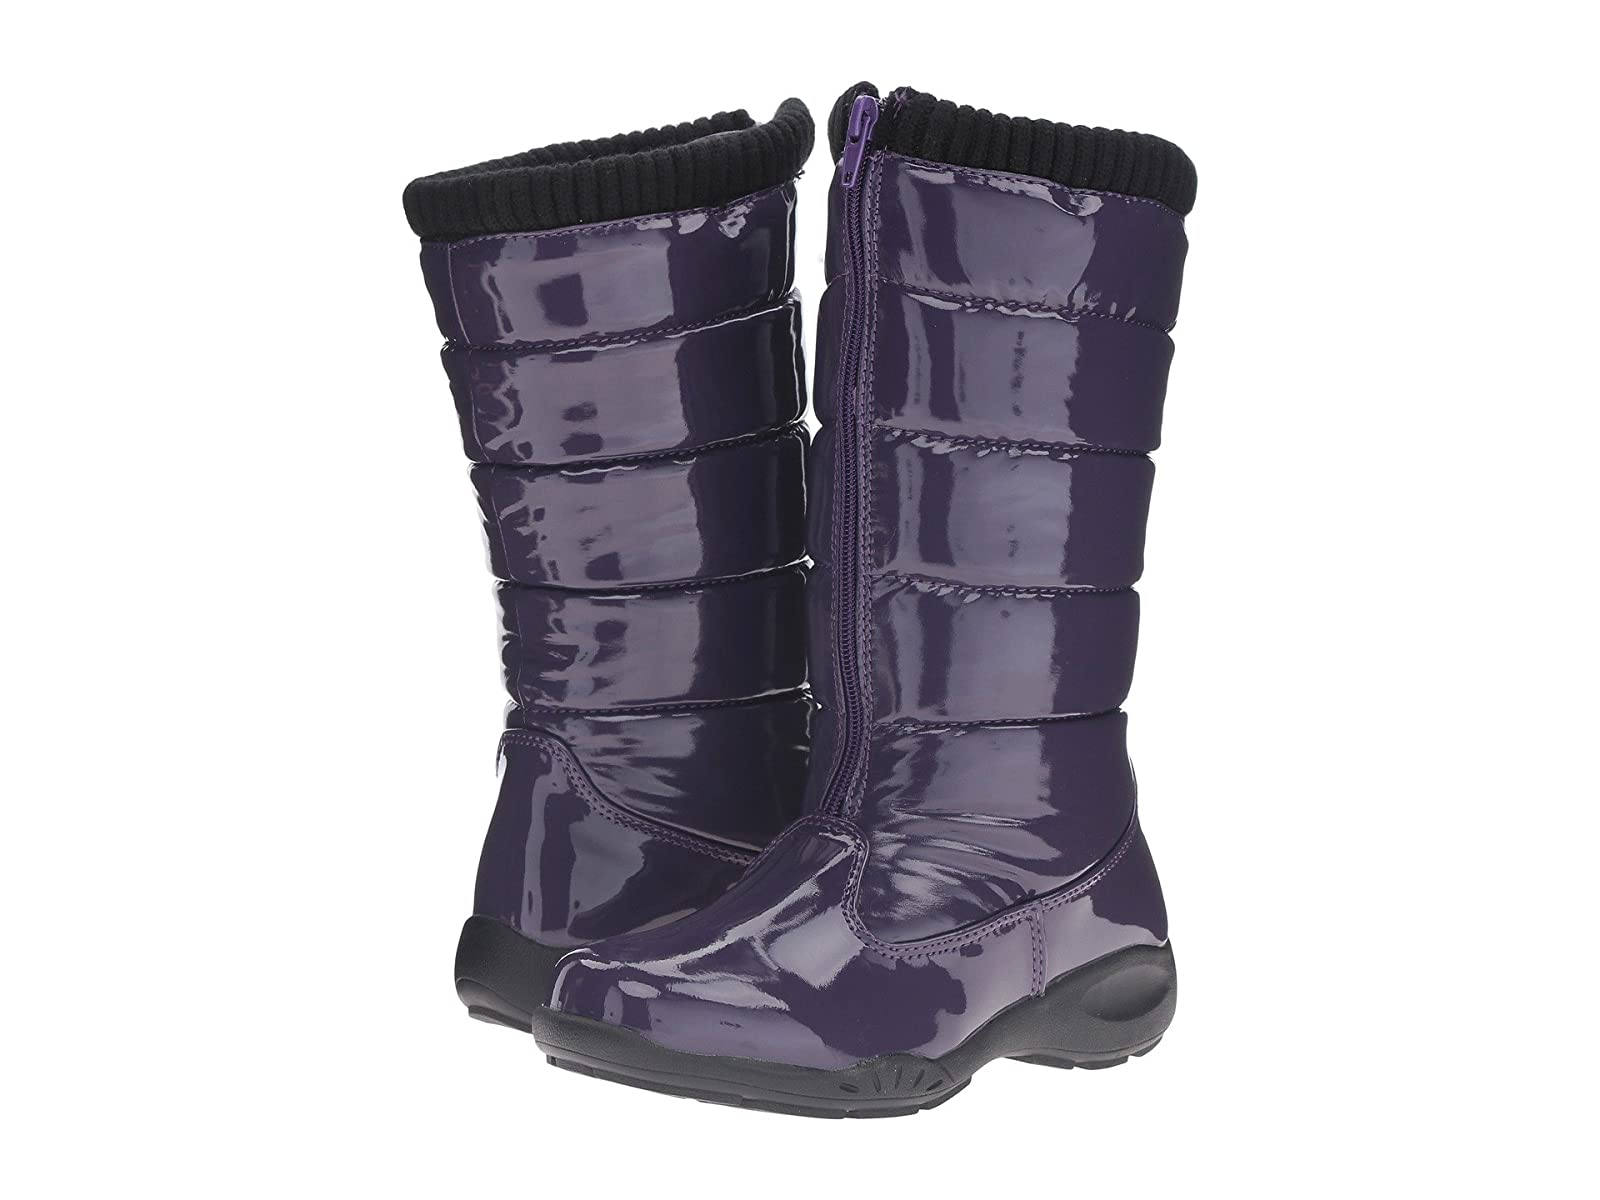 Tundra Boots Kids Puffy (Little Kid/Big Kid)Economical and quality shoes